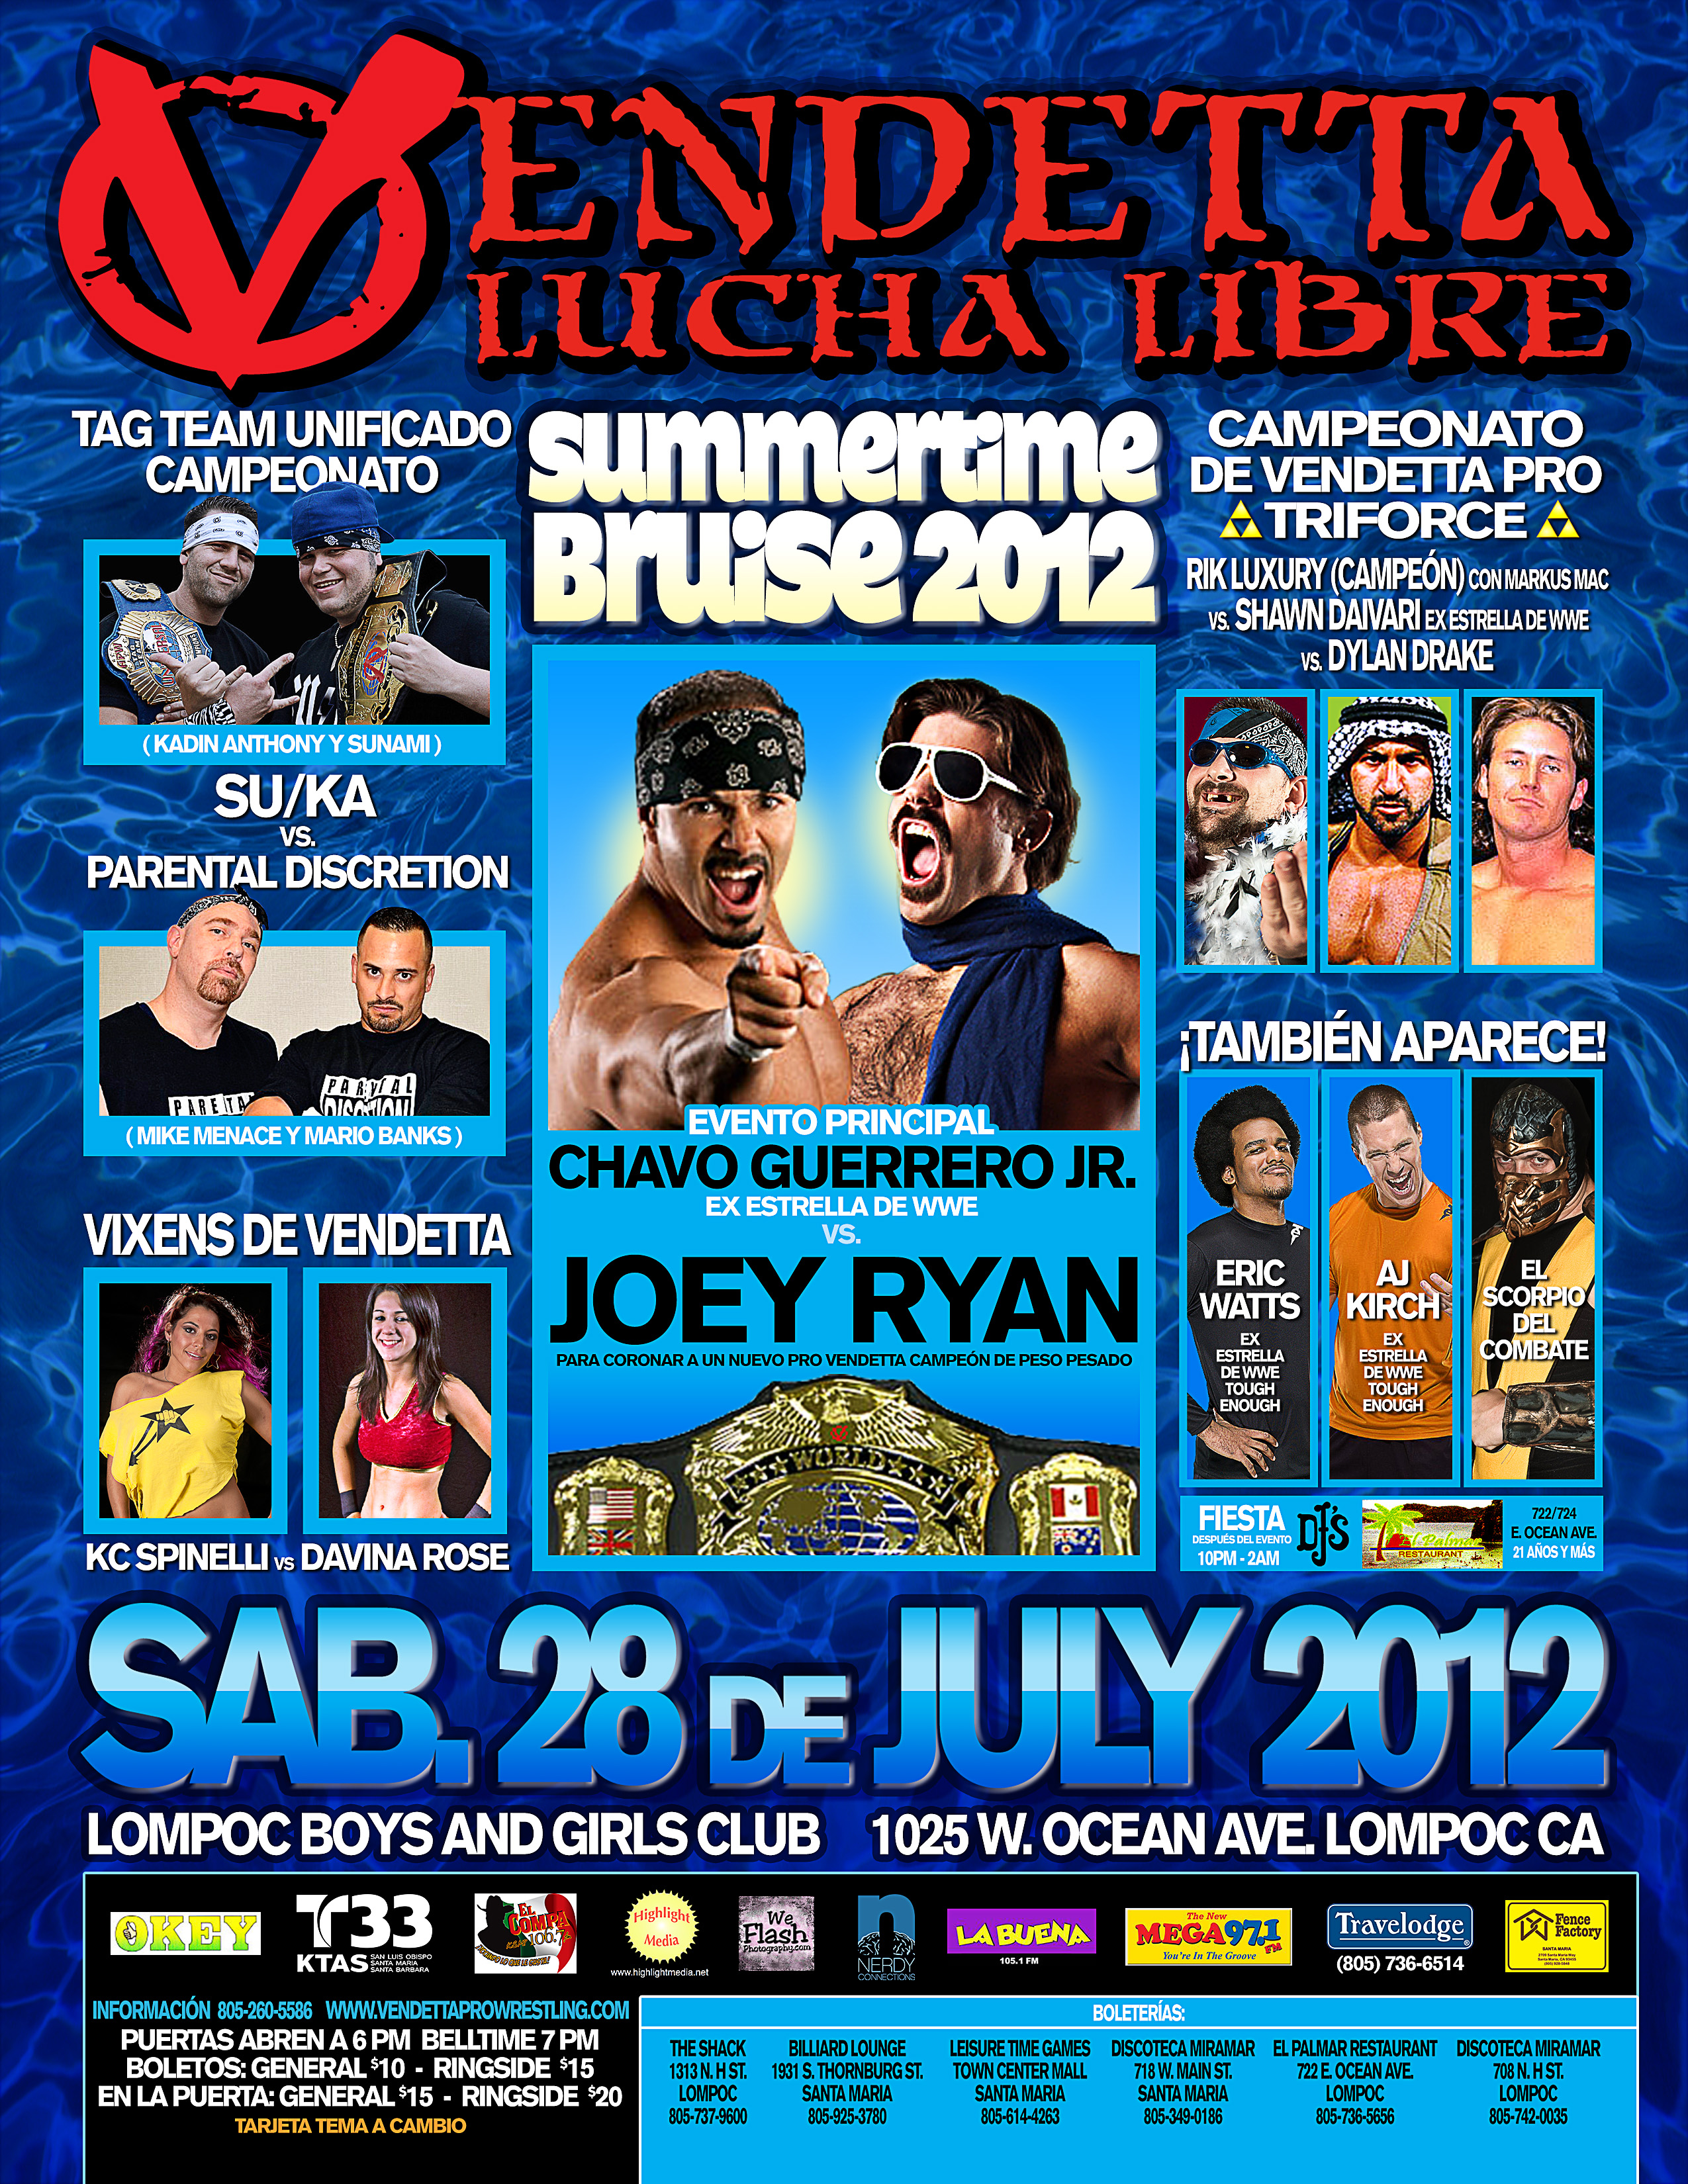 Summertime Bruise 2012 Spanish event flyer